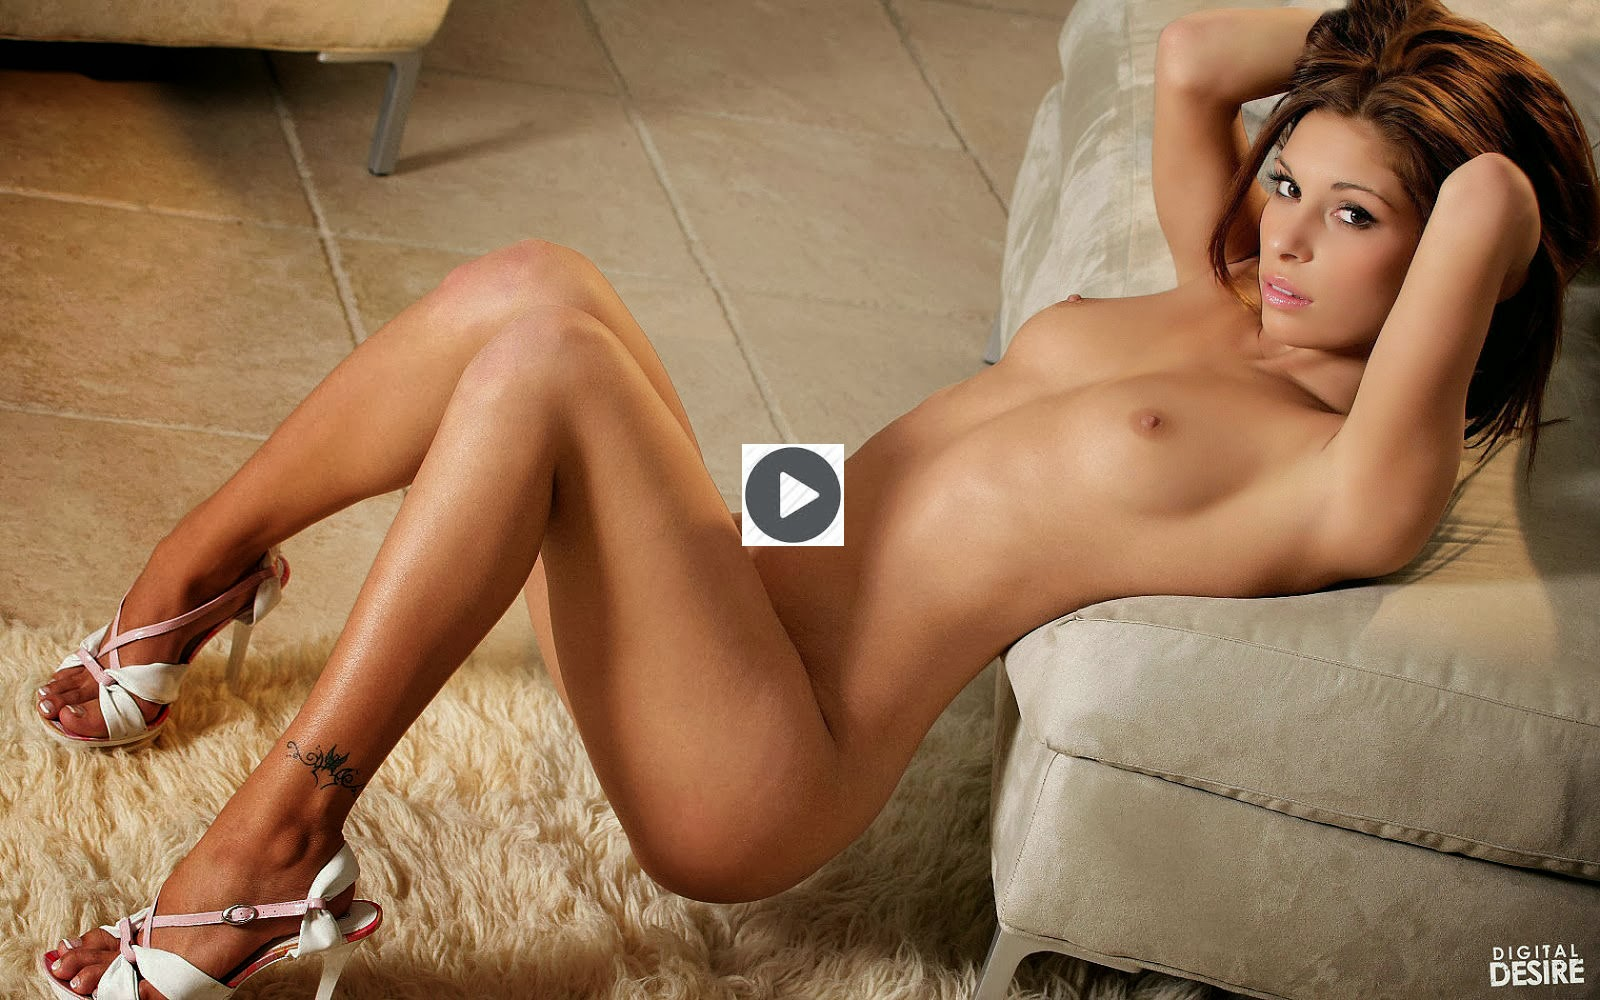 Nude Free Video Download 11